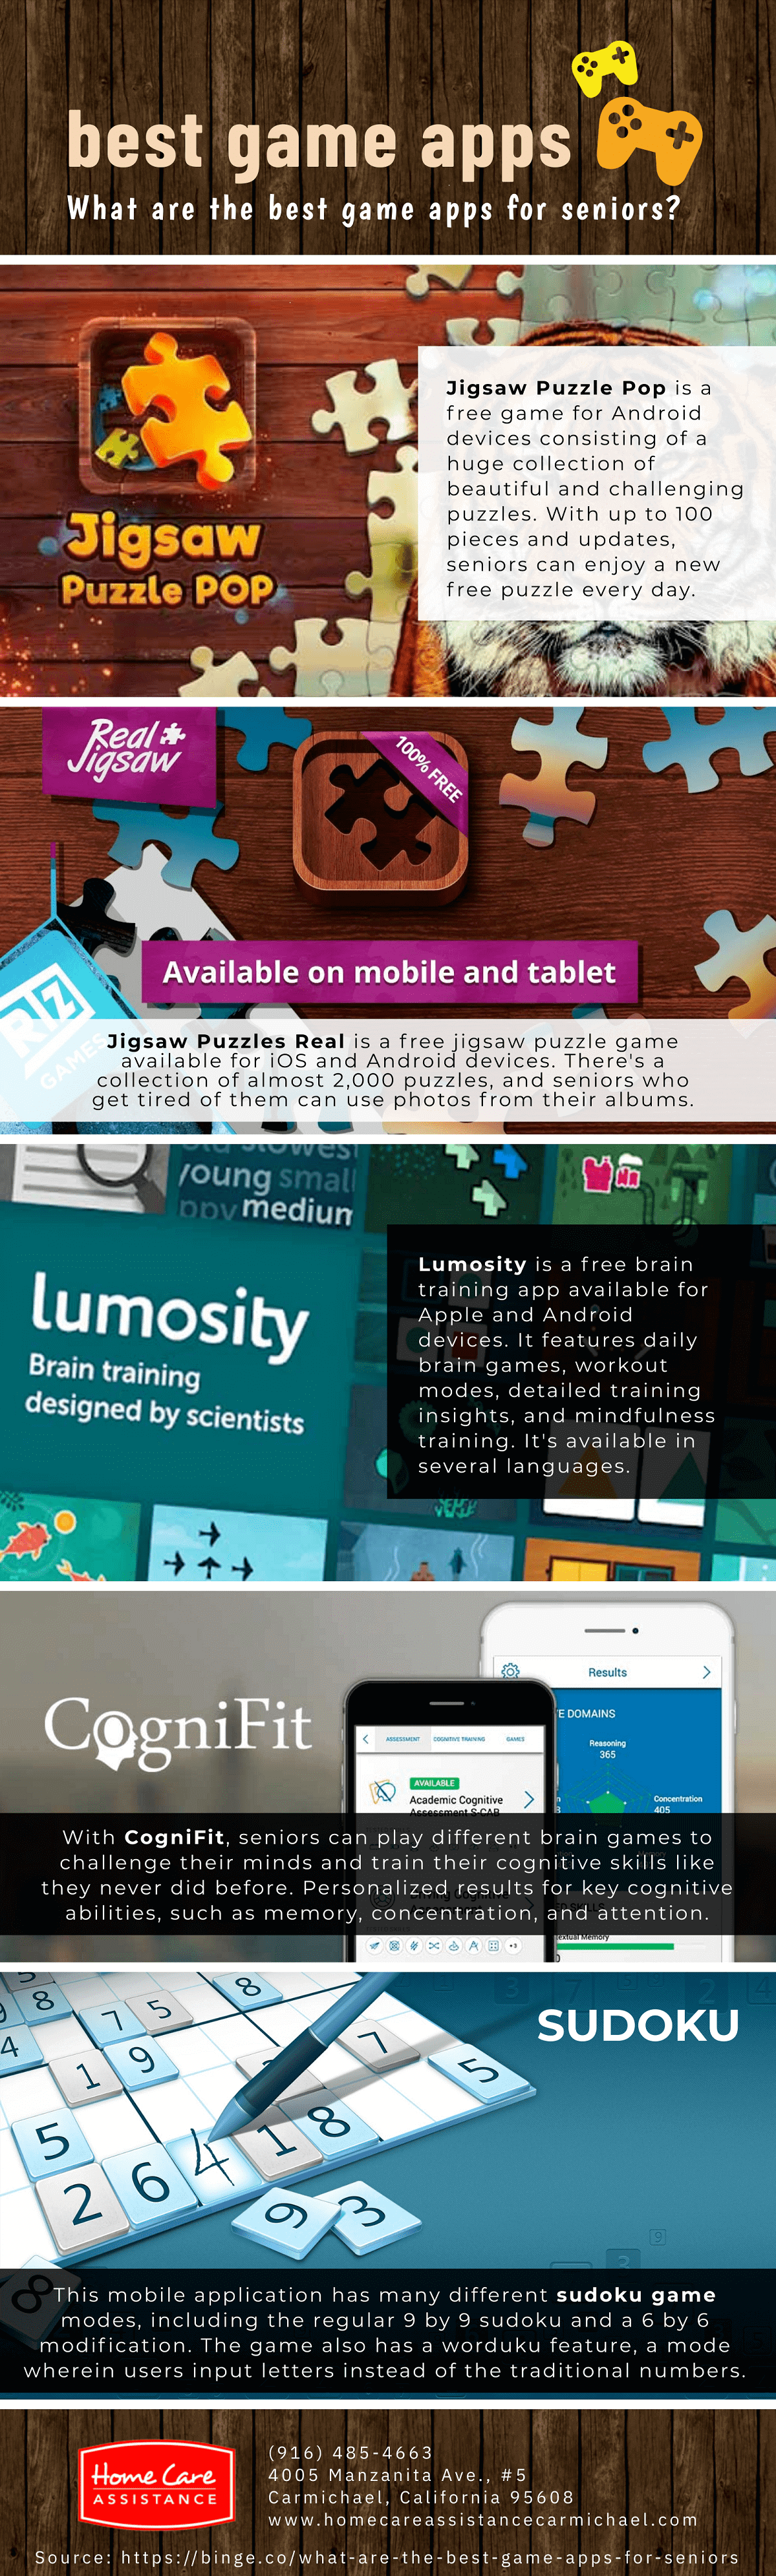 What Are Some of the Best Game Apps Seniors Can Use? [Infographic]